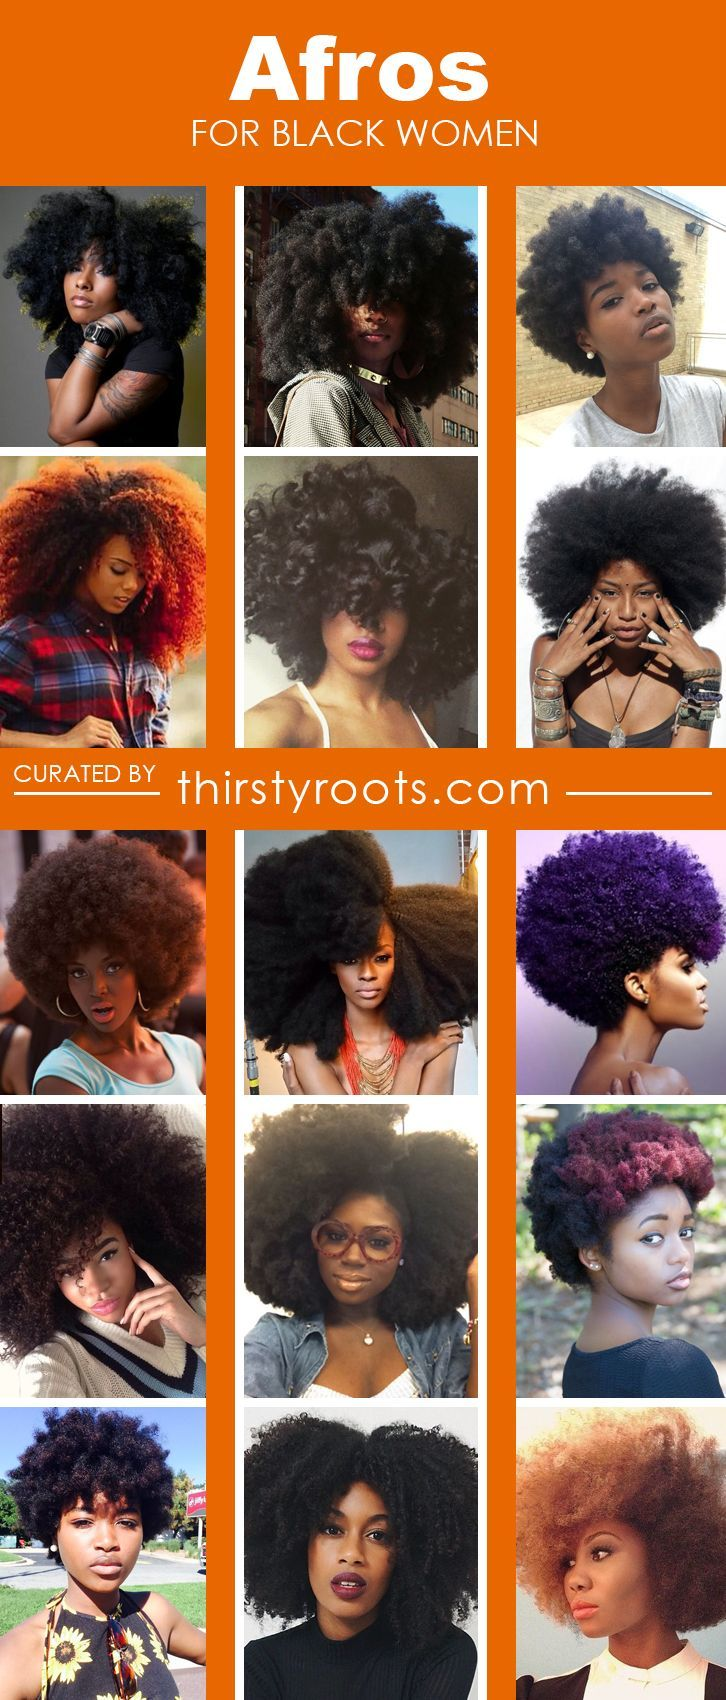 Super hot natural afro hairstyles for black women to rock in the streets and at the workplace. (scheduled via http://www.tailwindapp.com?utm_source=pinterest&utm_medium=twpin&utm_content=post116232347&utm_campaign=scheduler_attribution)